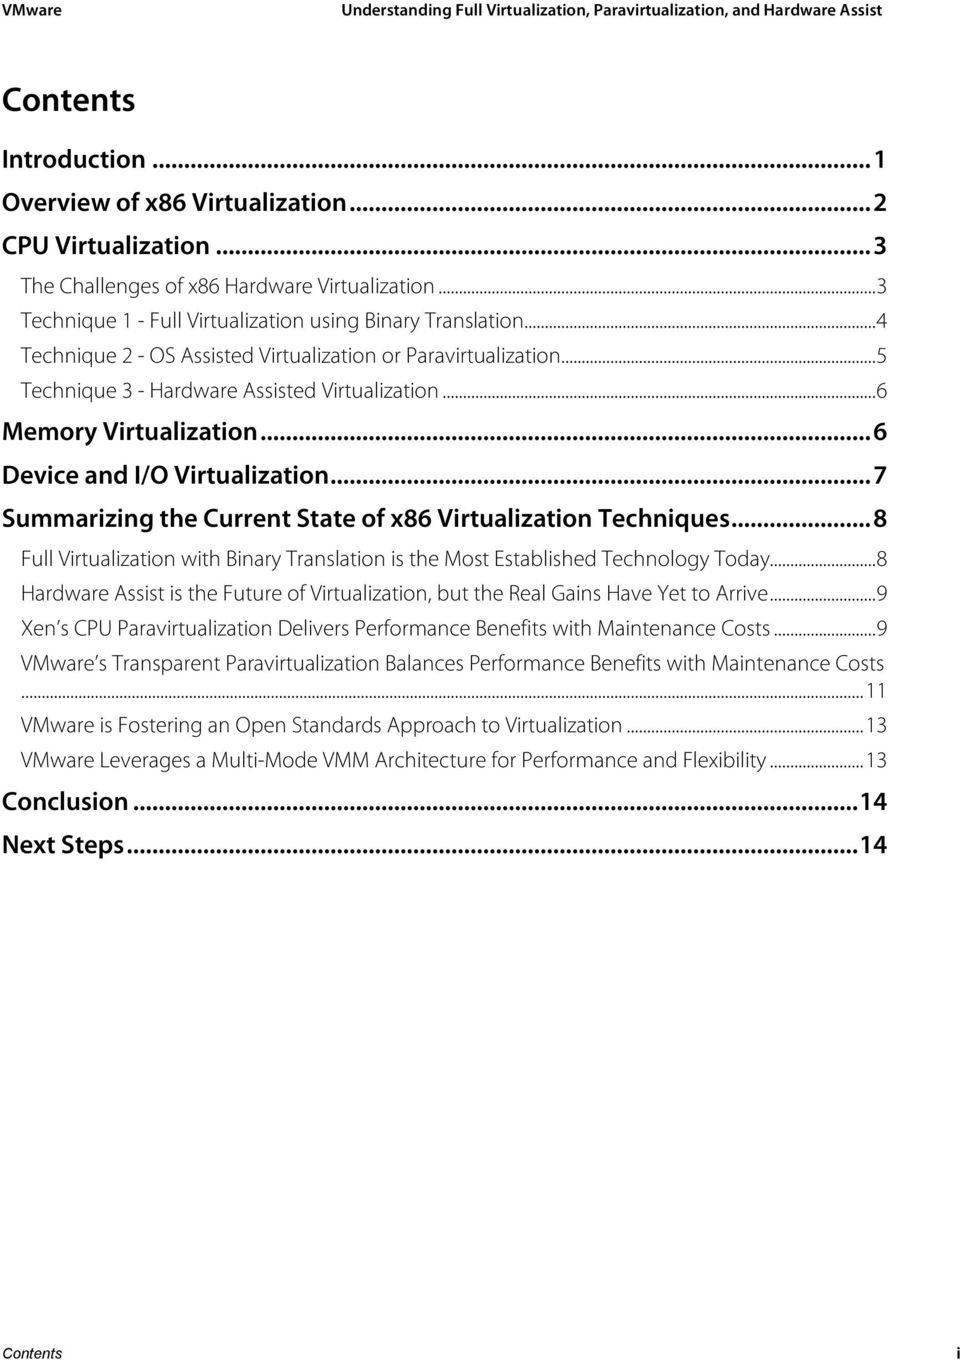 ..7 Summarizing the Current State of x86 Virtualization Techniques...8 Full Virtualization with Binary Translation is the Most Established Technology Today.